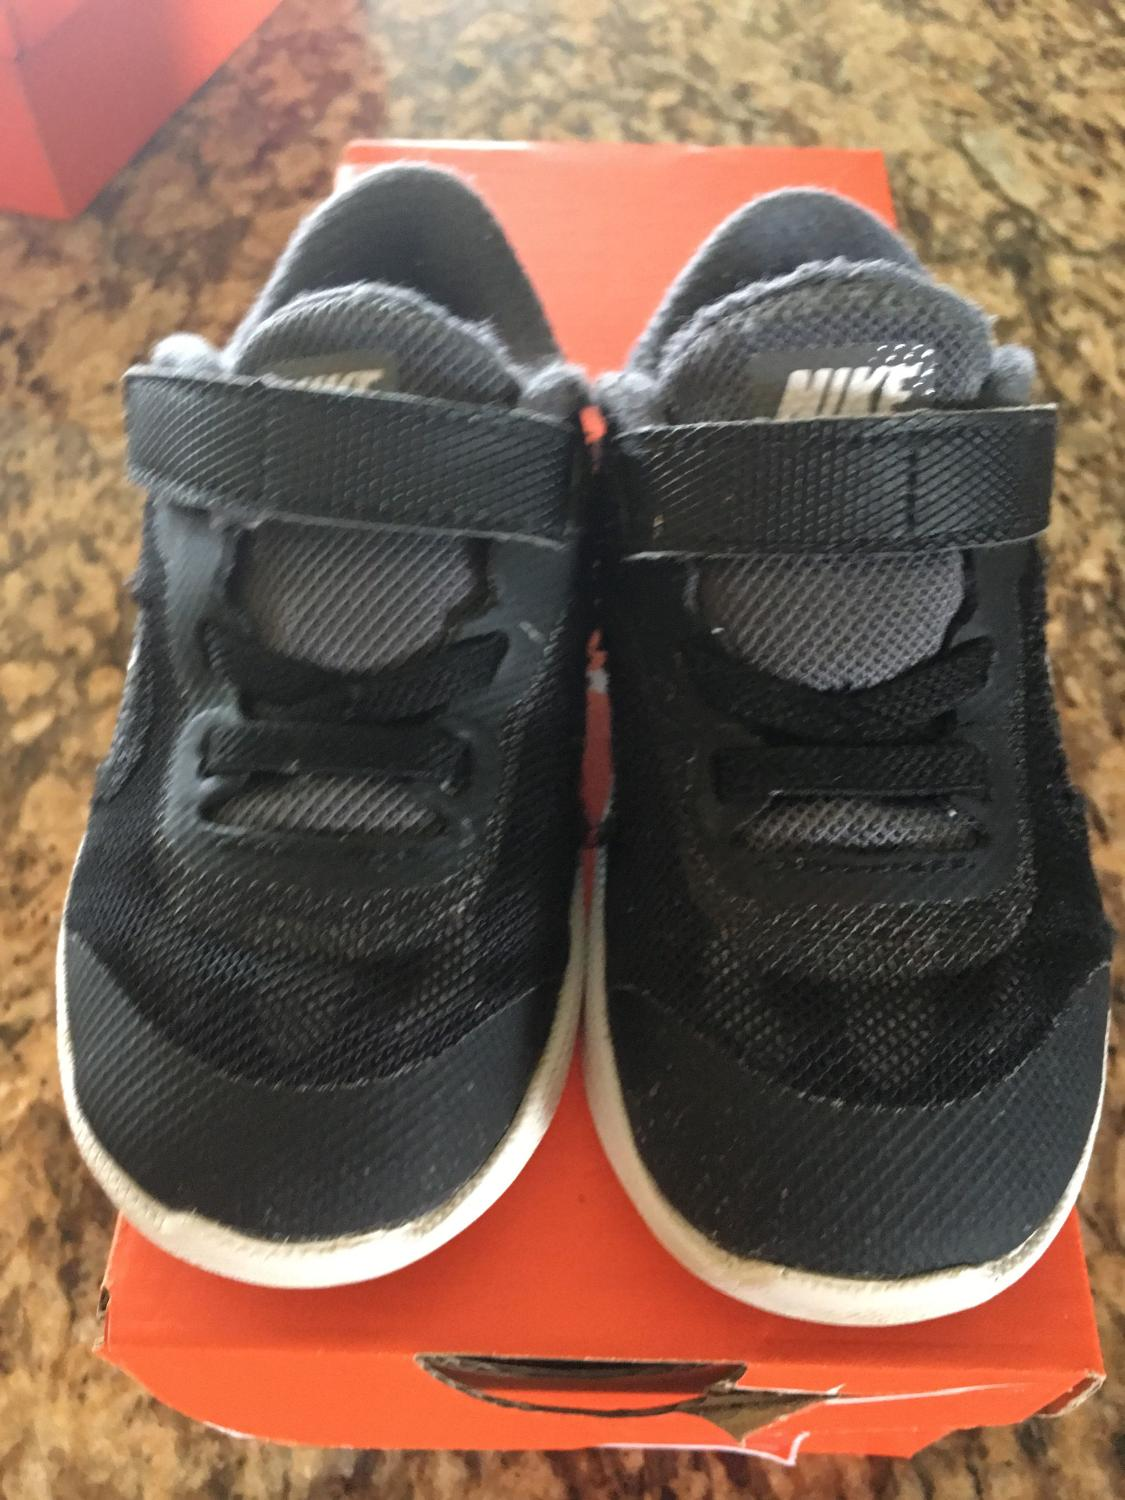 Toddler Winter Boots Size 9 Sale